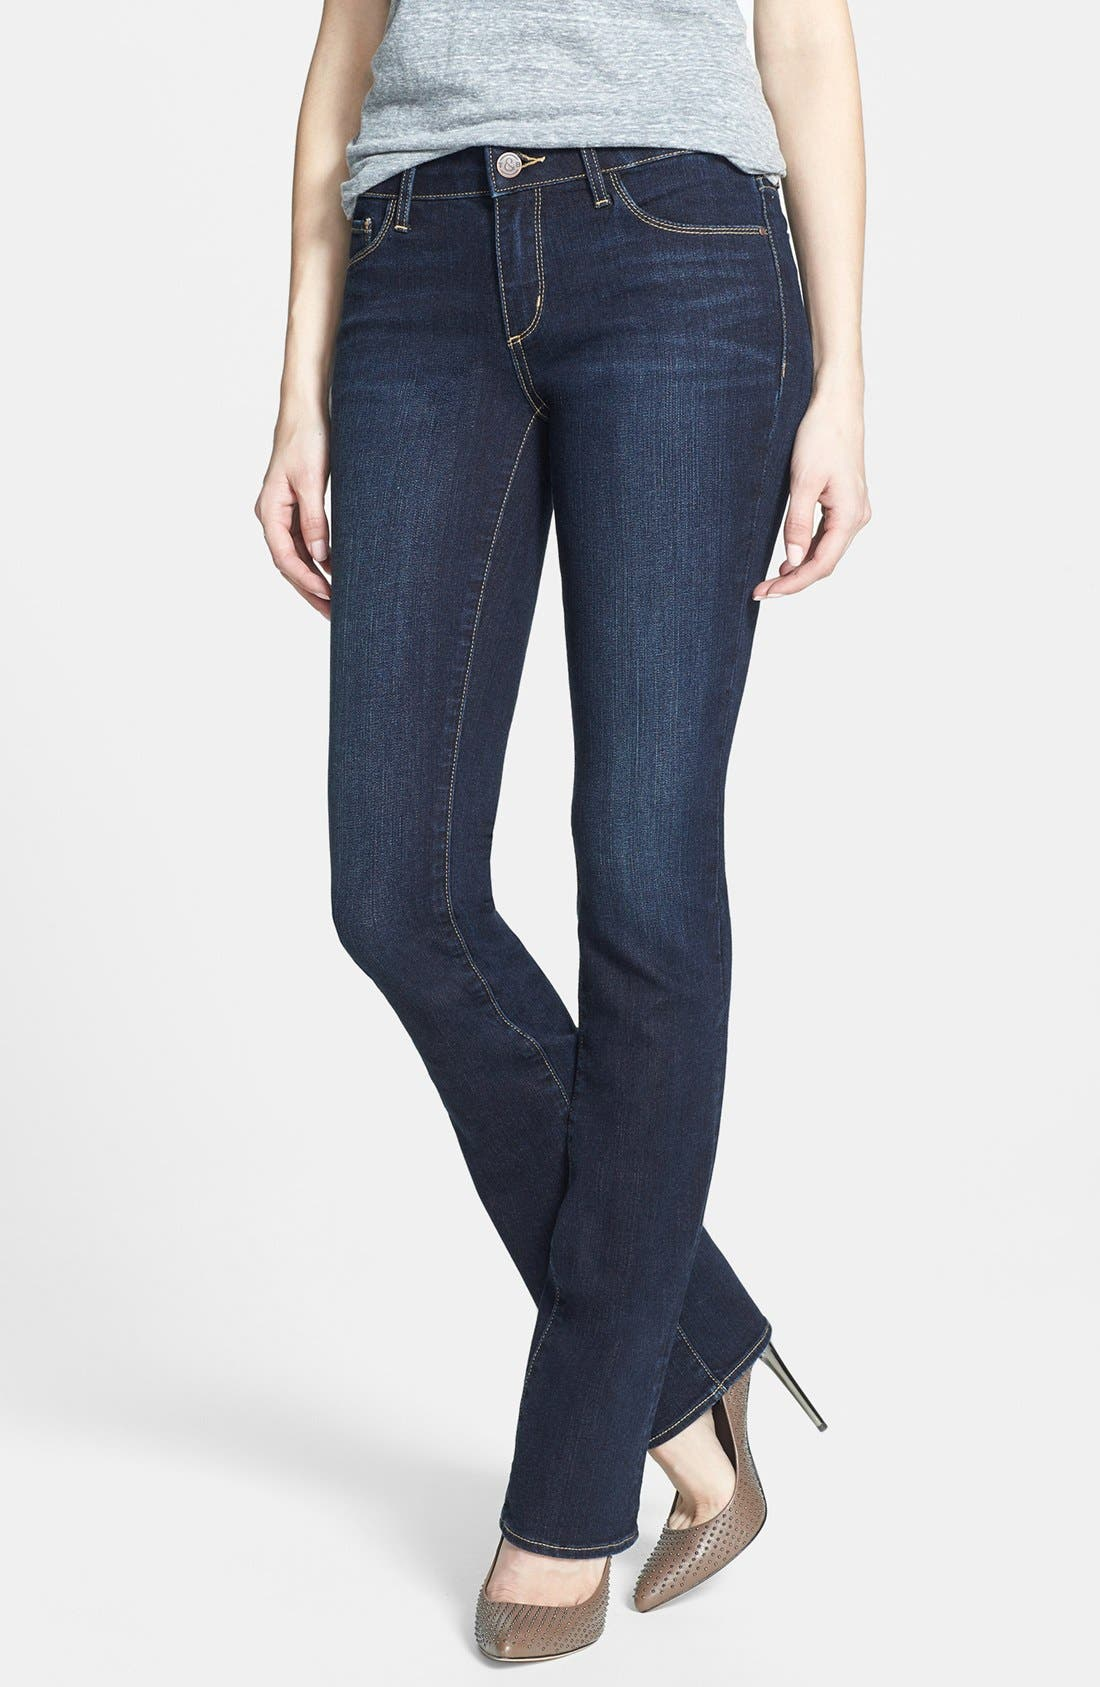 Alternate Image 1 Selected - Treasure&Bond Slim Bootcut Jeans (Dark)